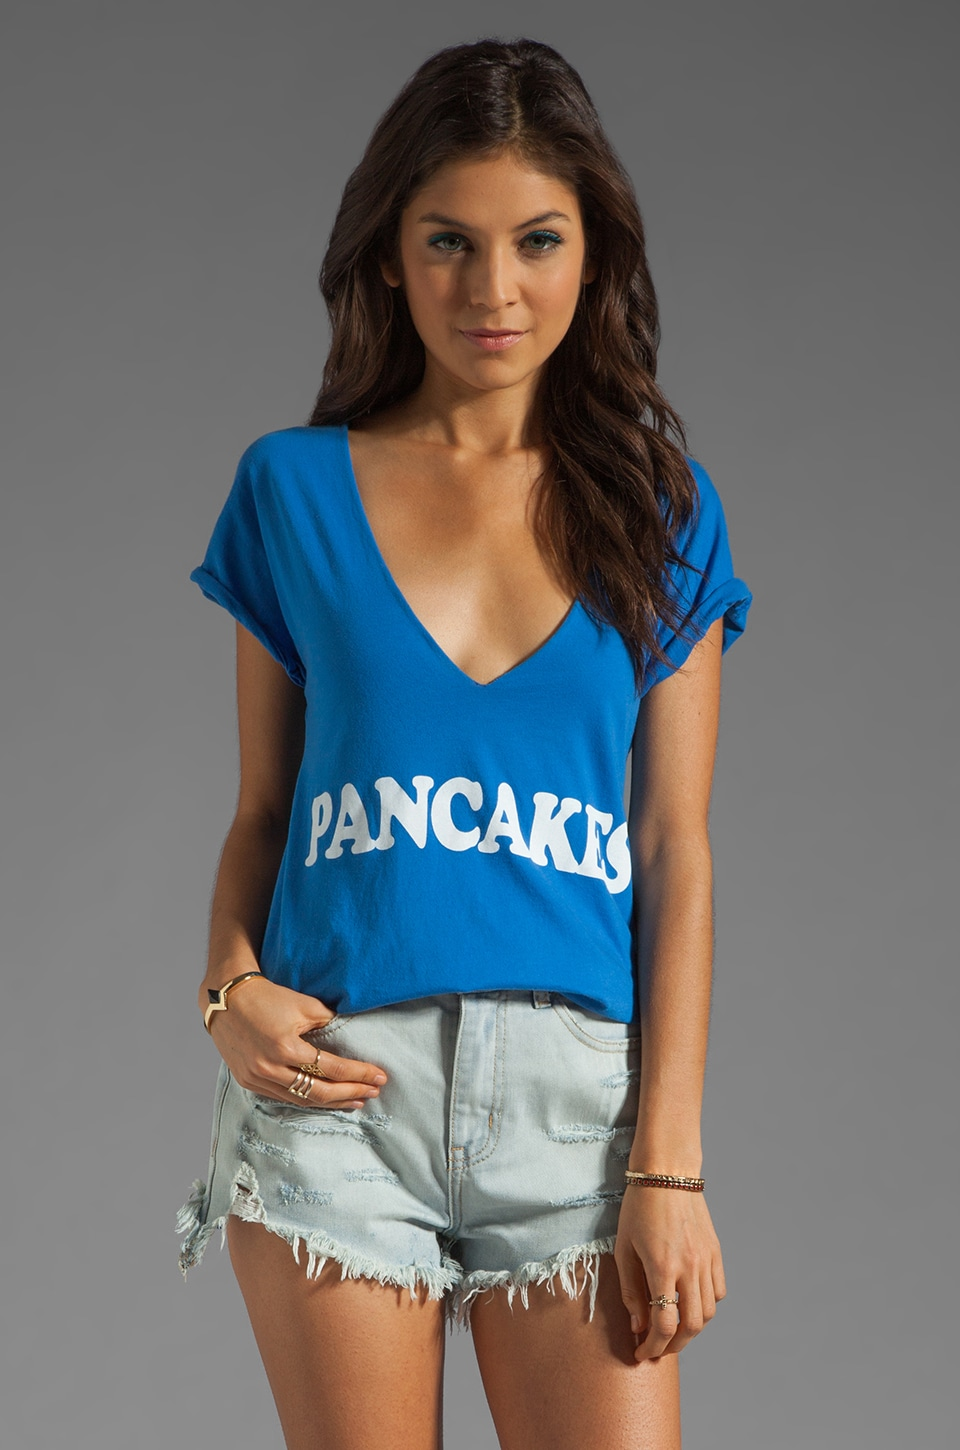 Local Celebrity Pancakes Tee in Royal